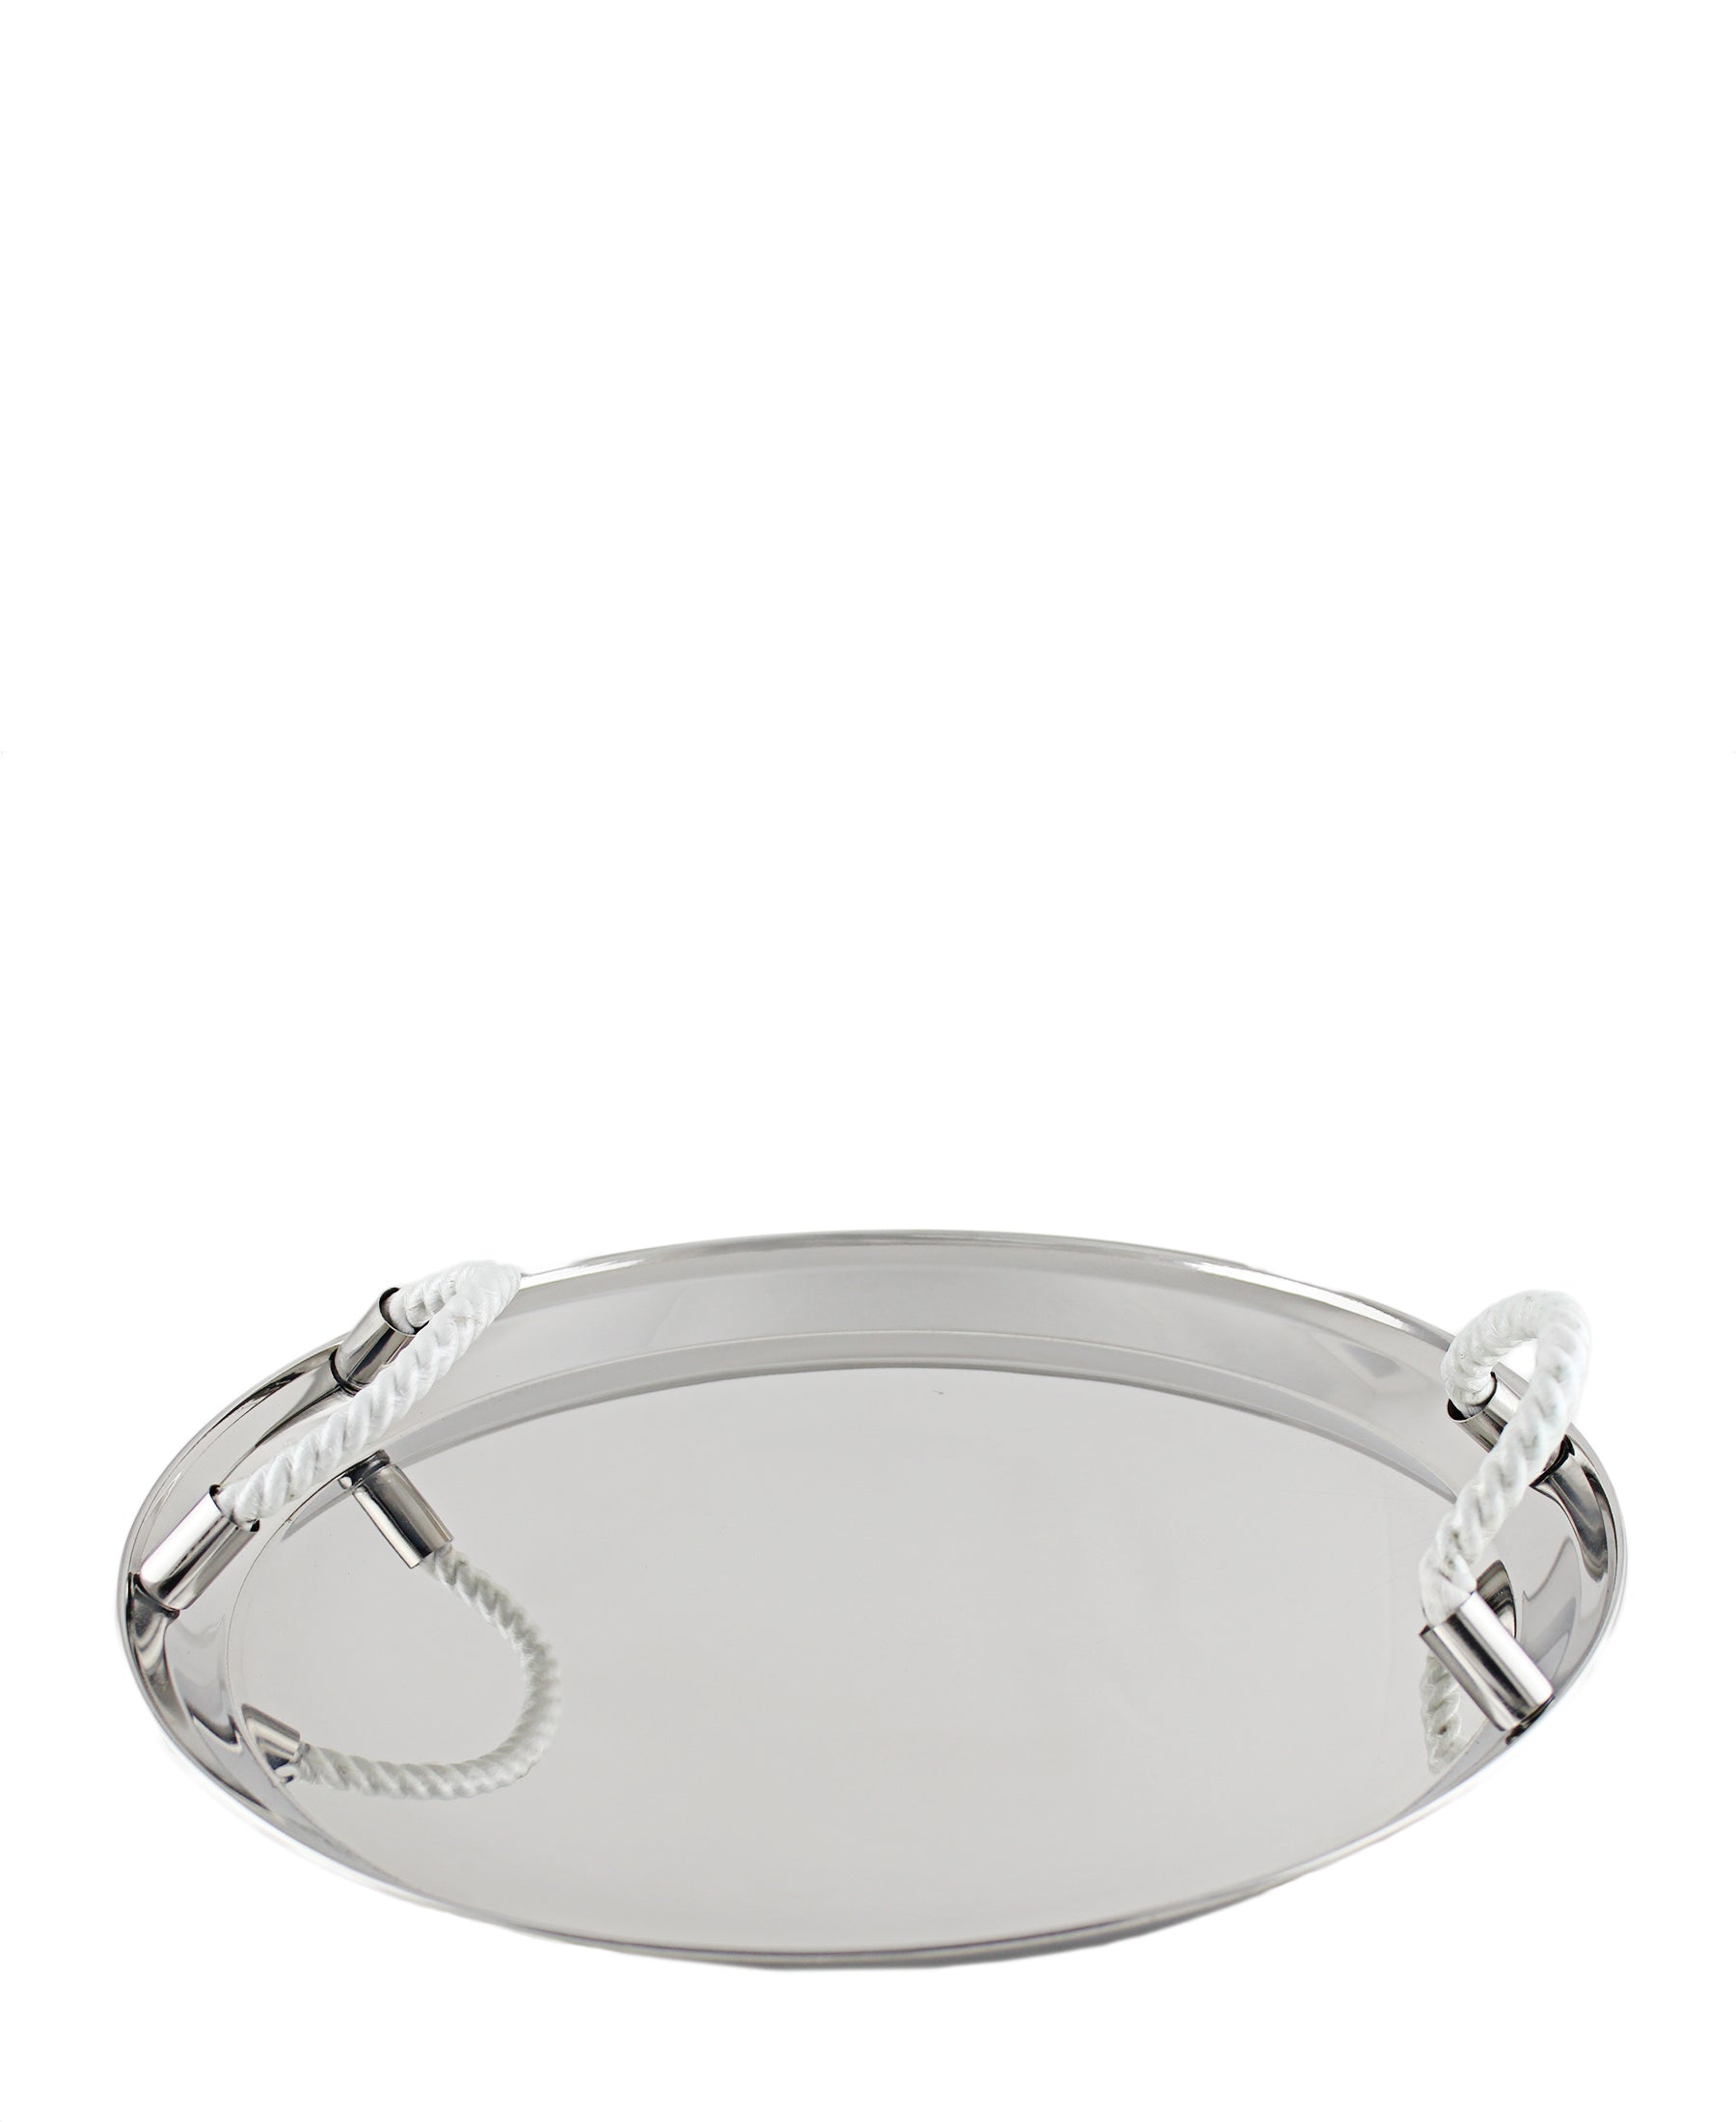 Serving Tray With Rope - Silver